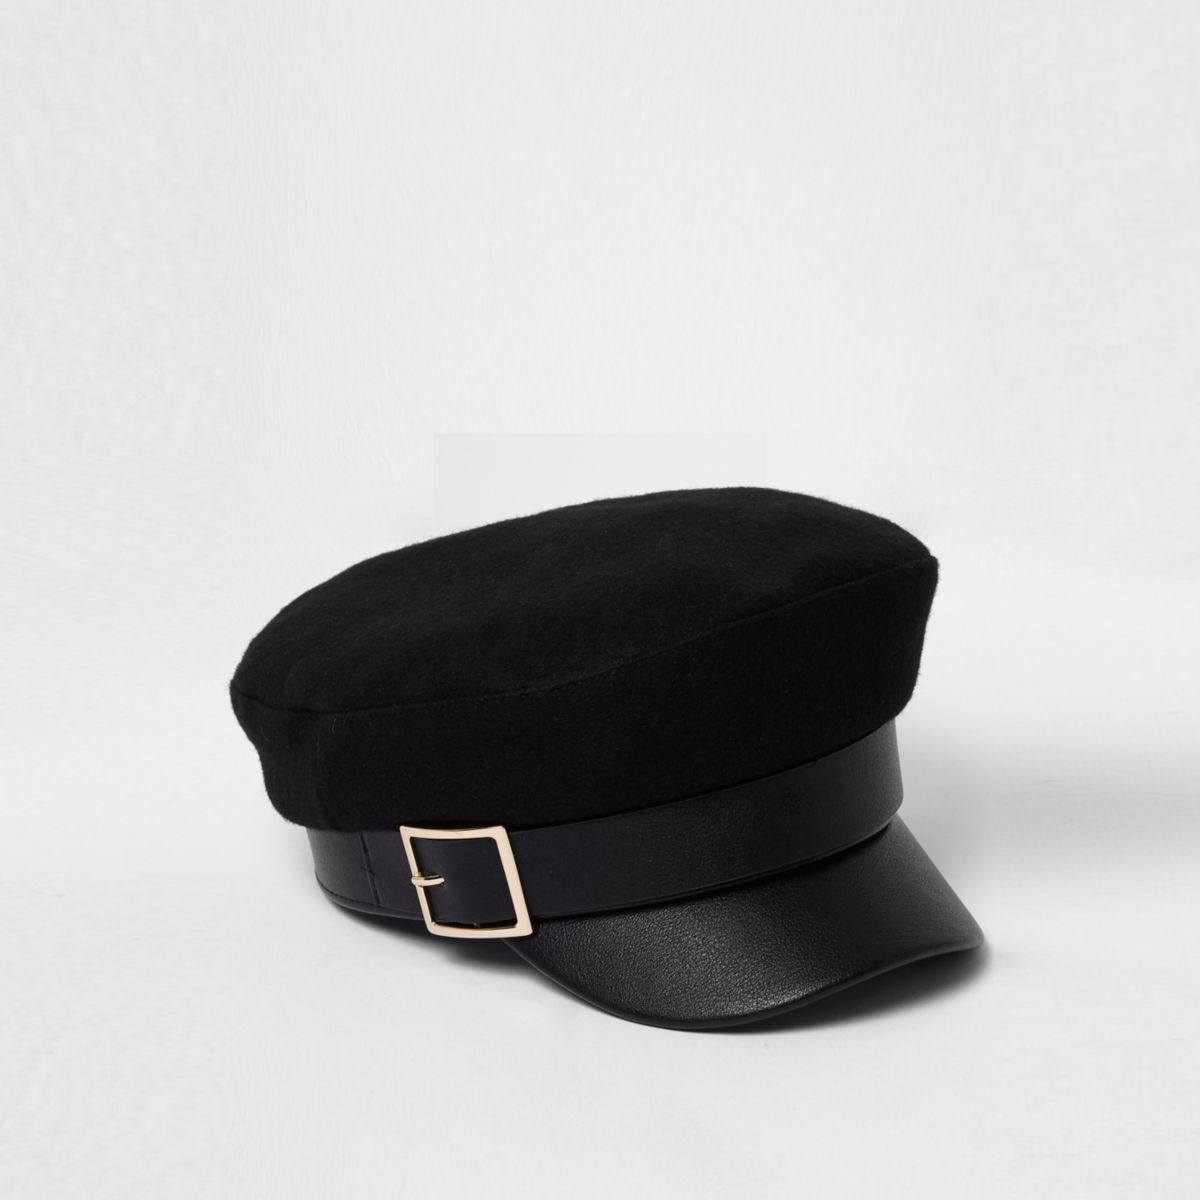 Black gold buckle baker boy hat